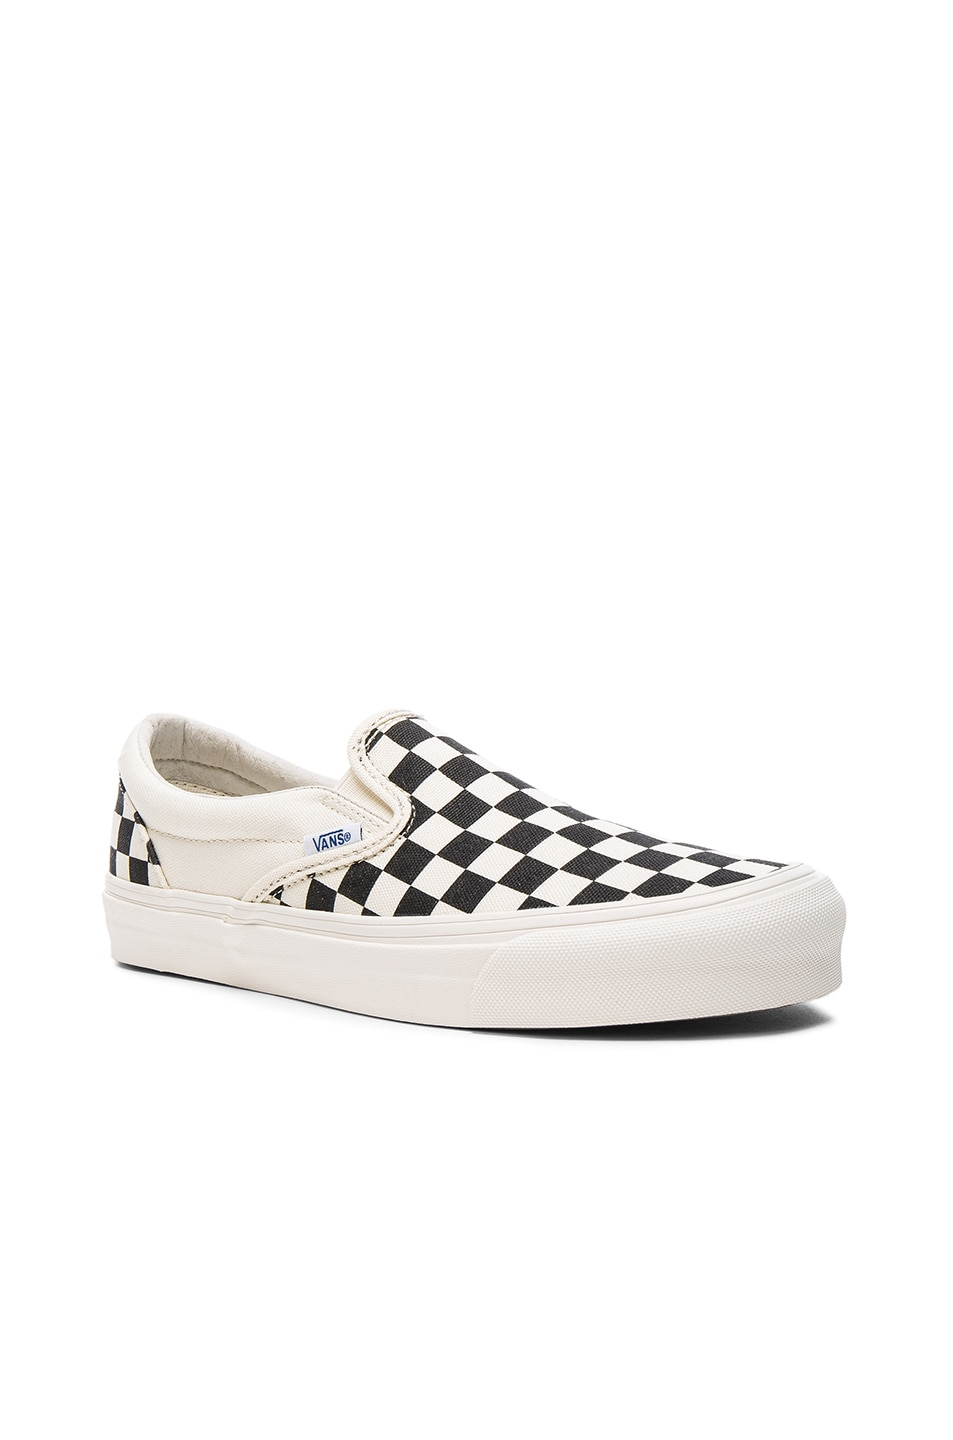 vans vault classic slip on lx checkerboard